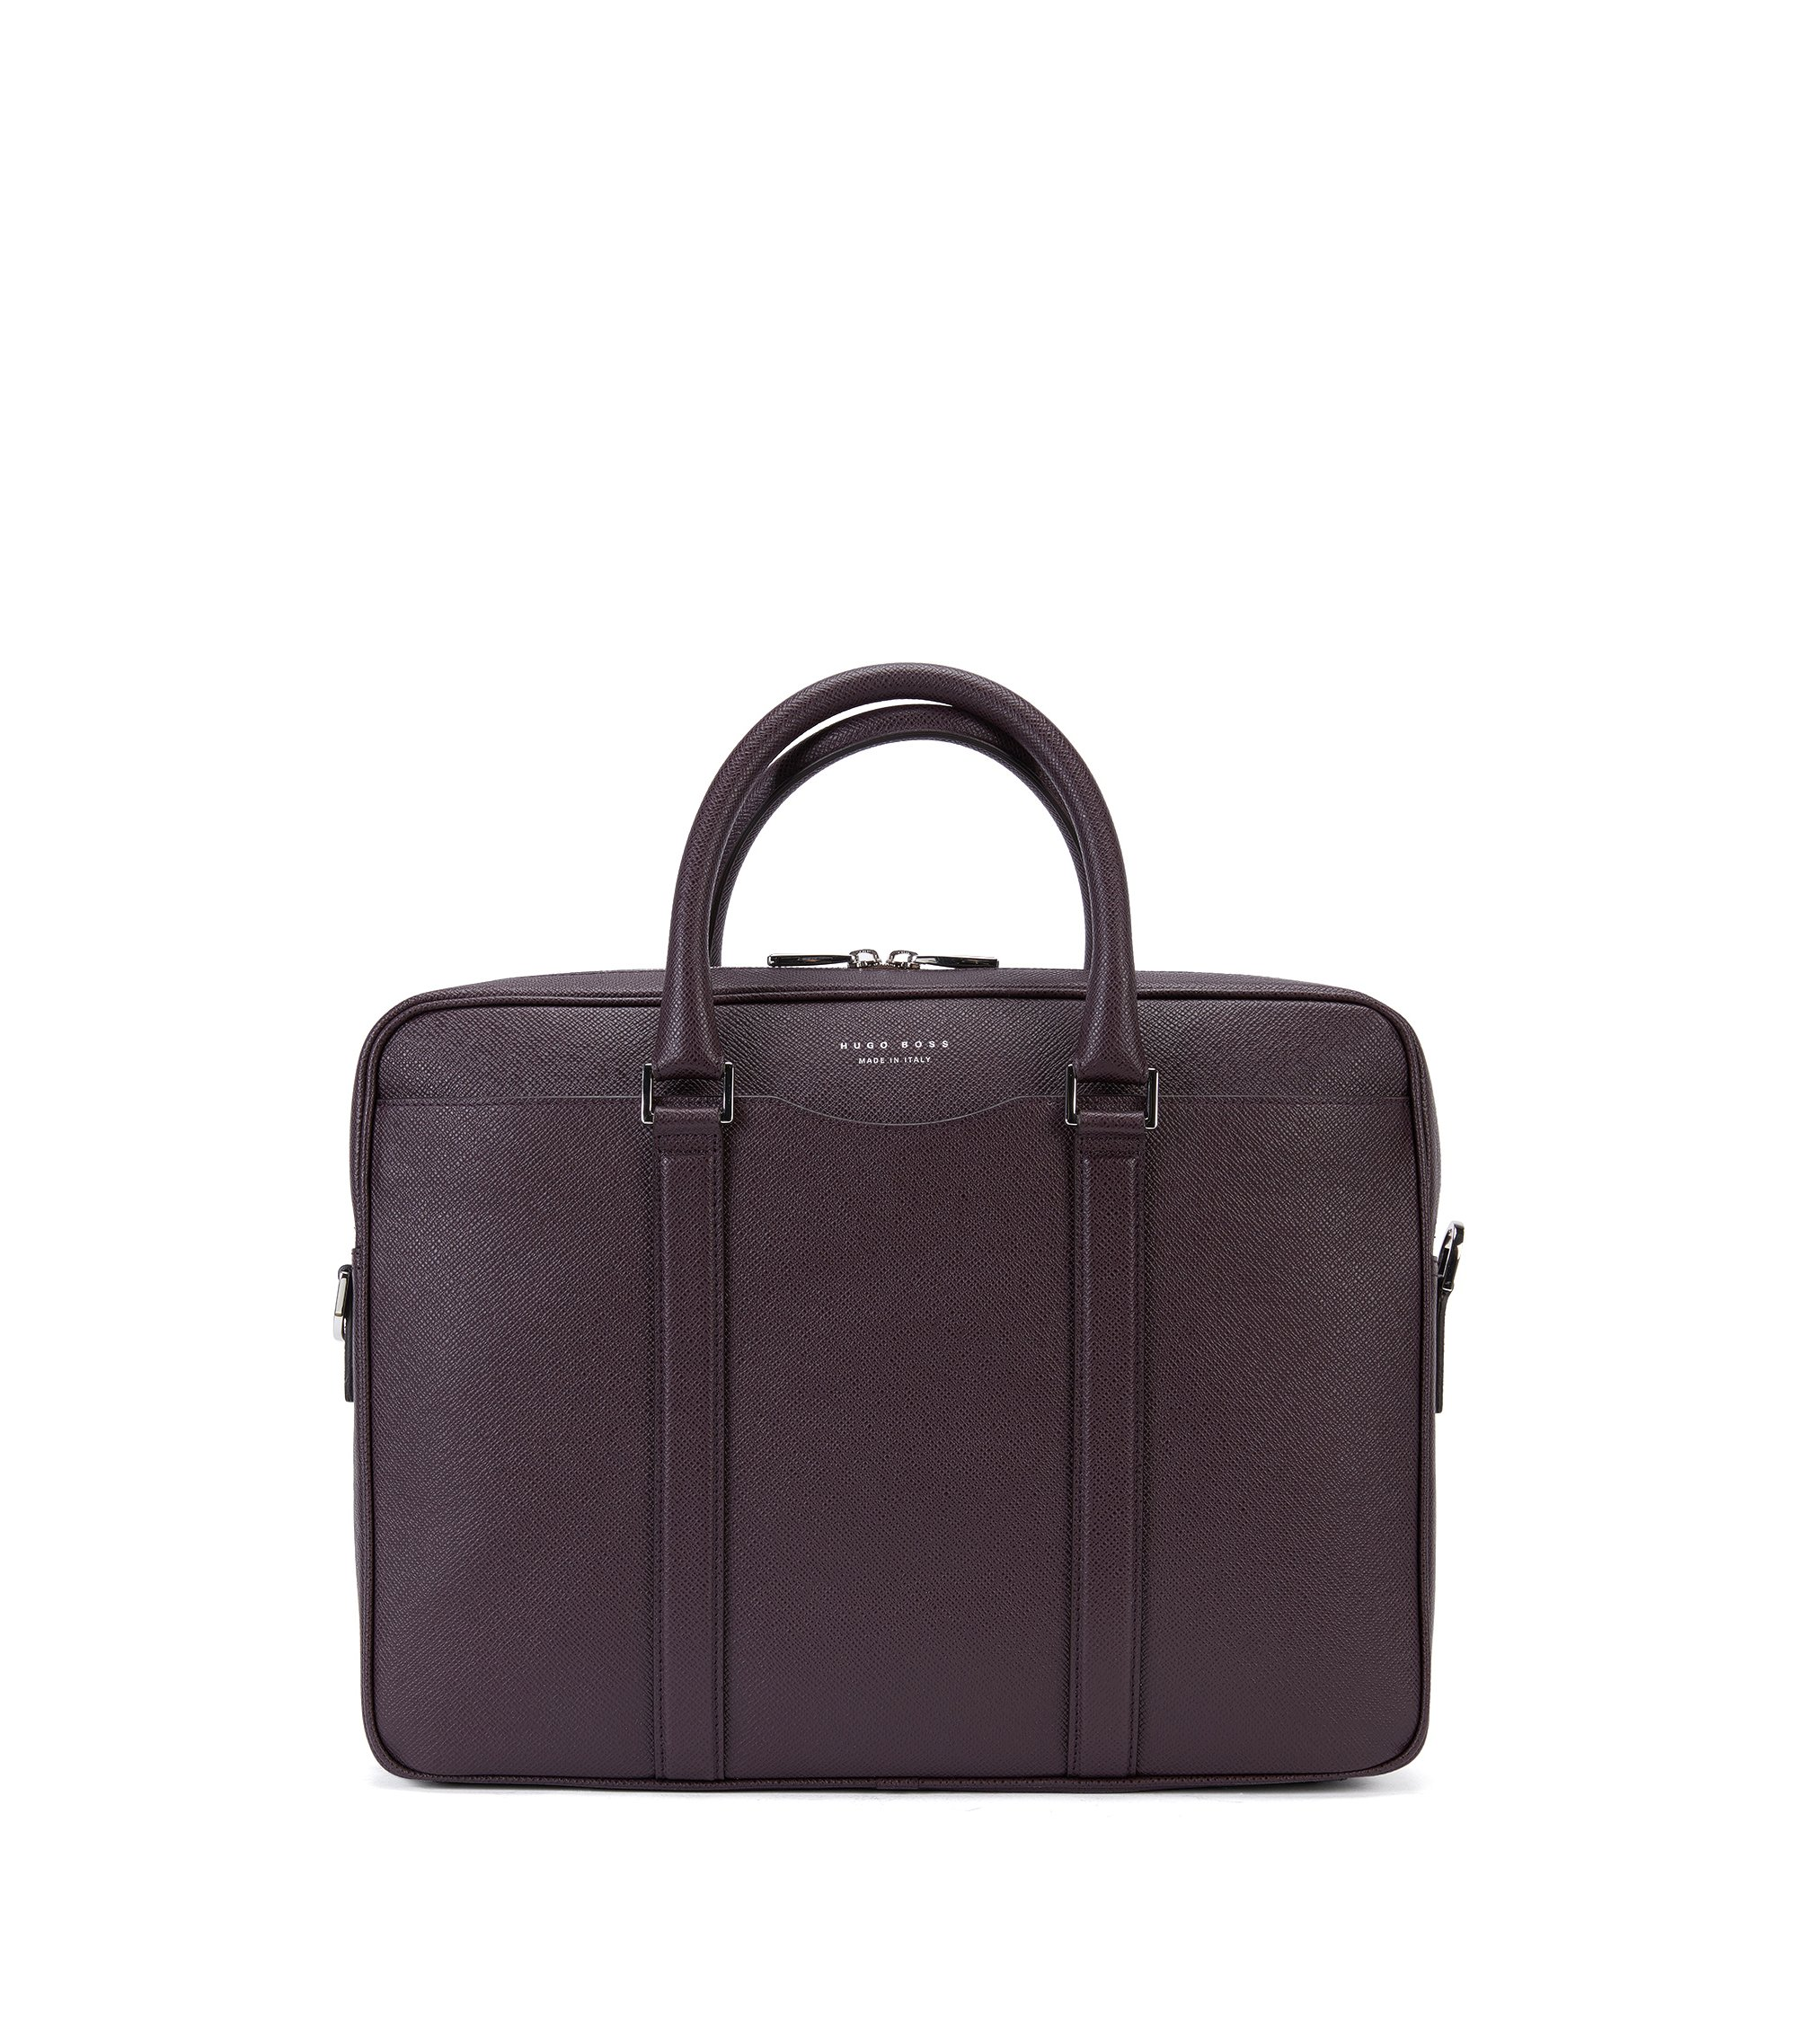 Tas van palmellatoleer uit de Signature Collection van BOSS, Donkerrood